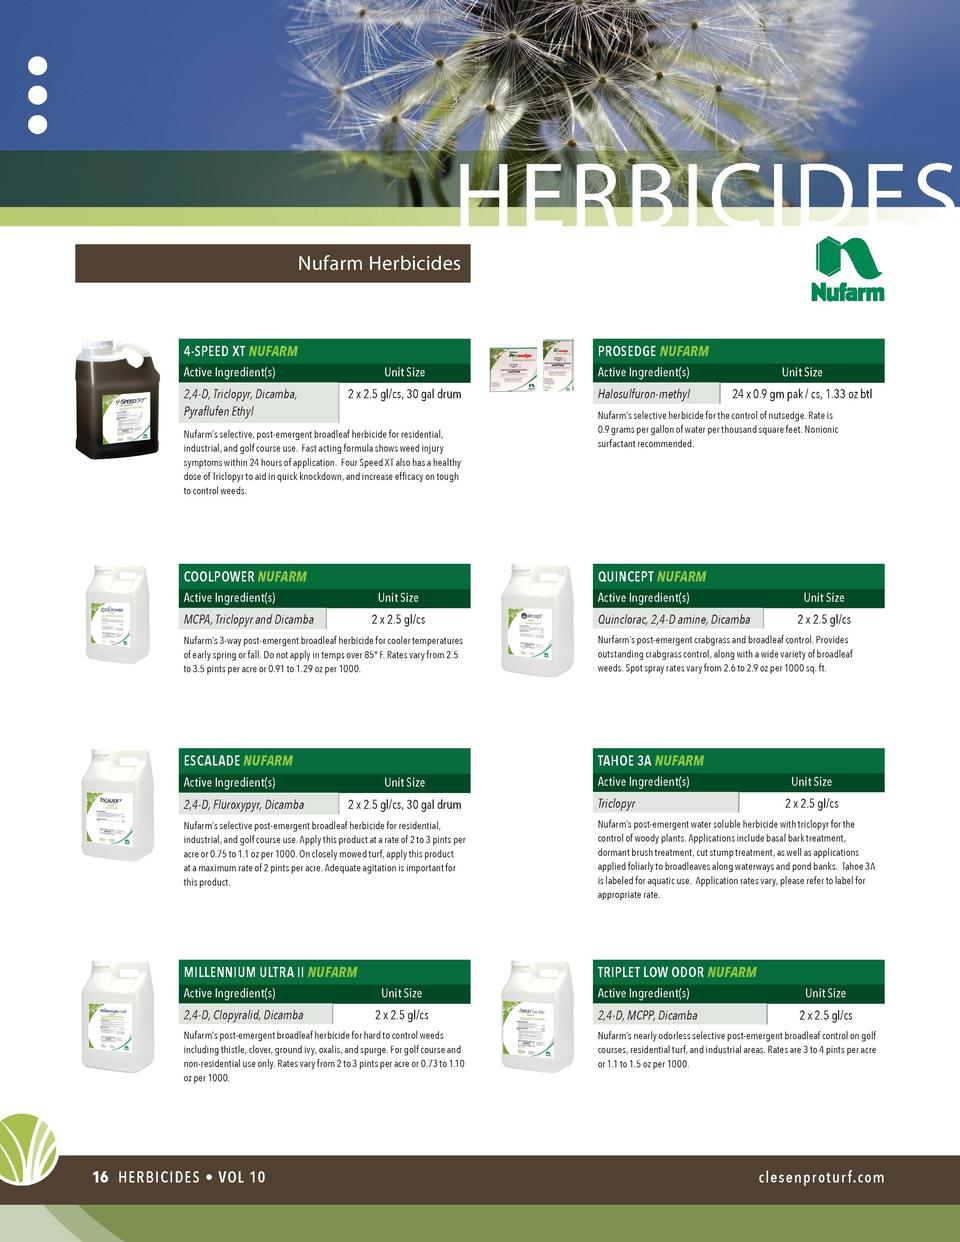 herbicides  Nufarm Herbicides  PROSEDGE NUFARM  4-SPEED XT NUFARM Unit Size  Active Ingredient s   Unit Size  2 x 2.5 gl c...